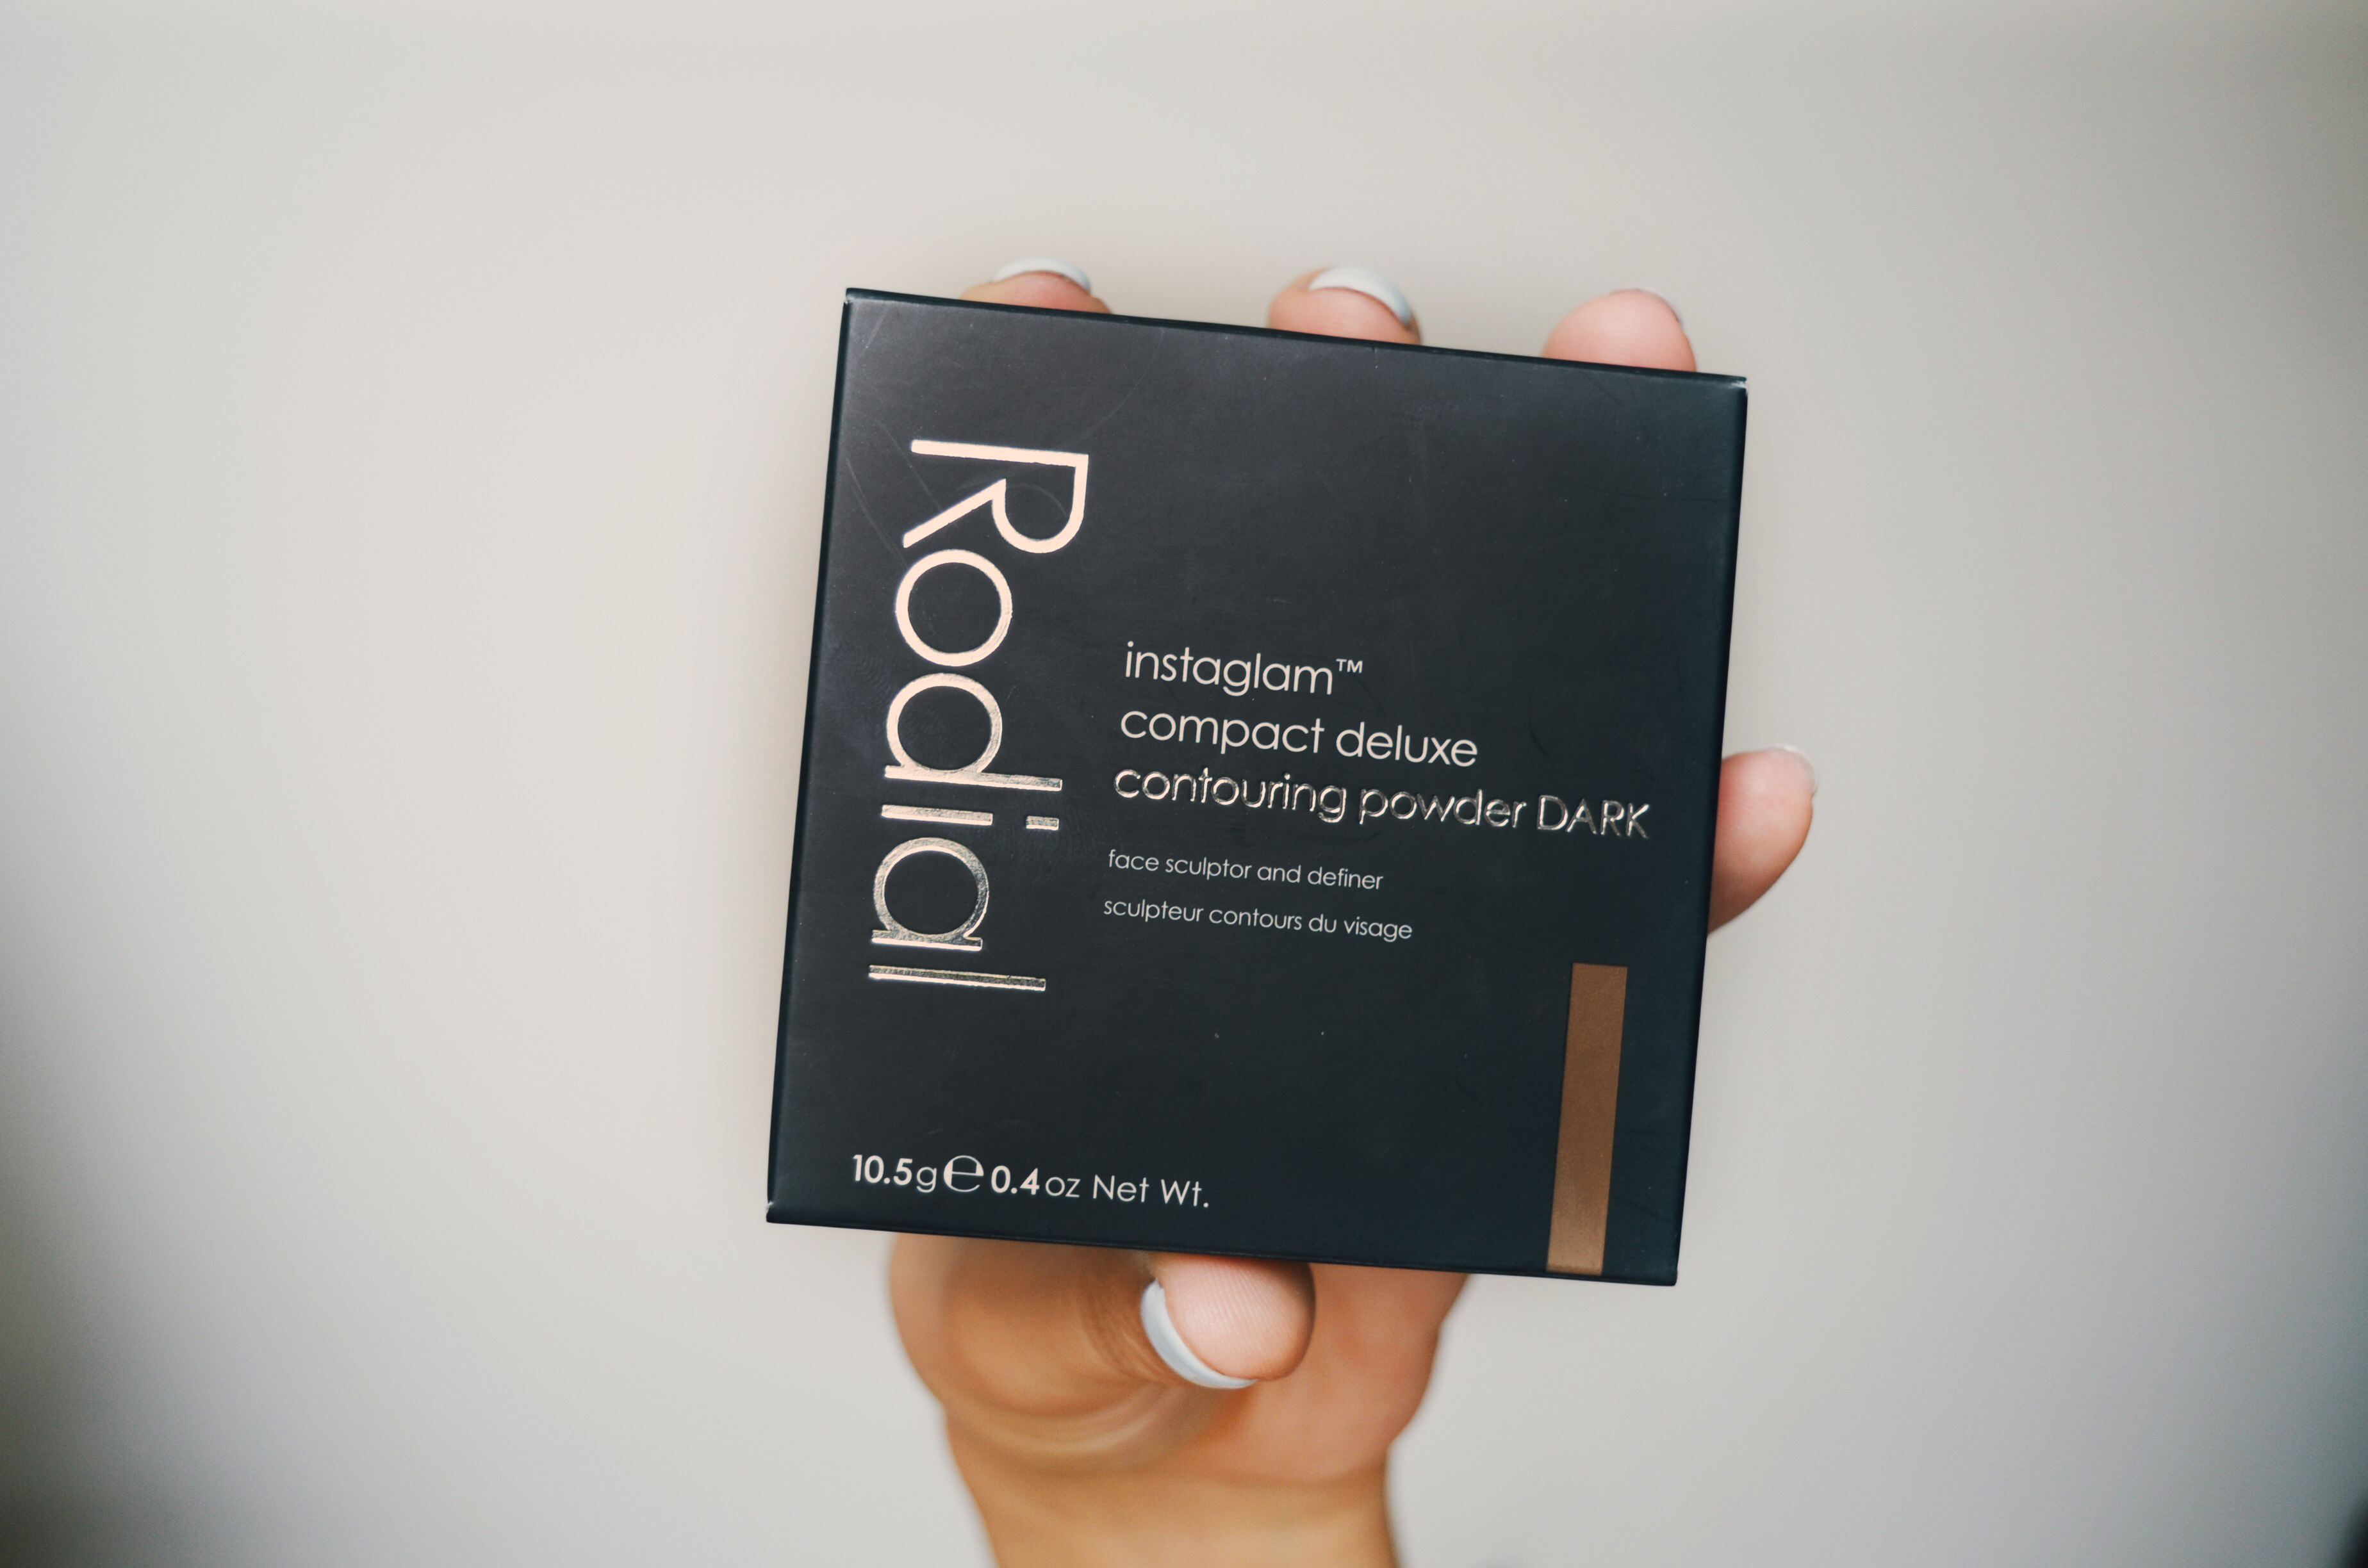 1. Rodial Instaglam Compact Deluxe Contouring Powder* - £52